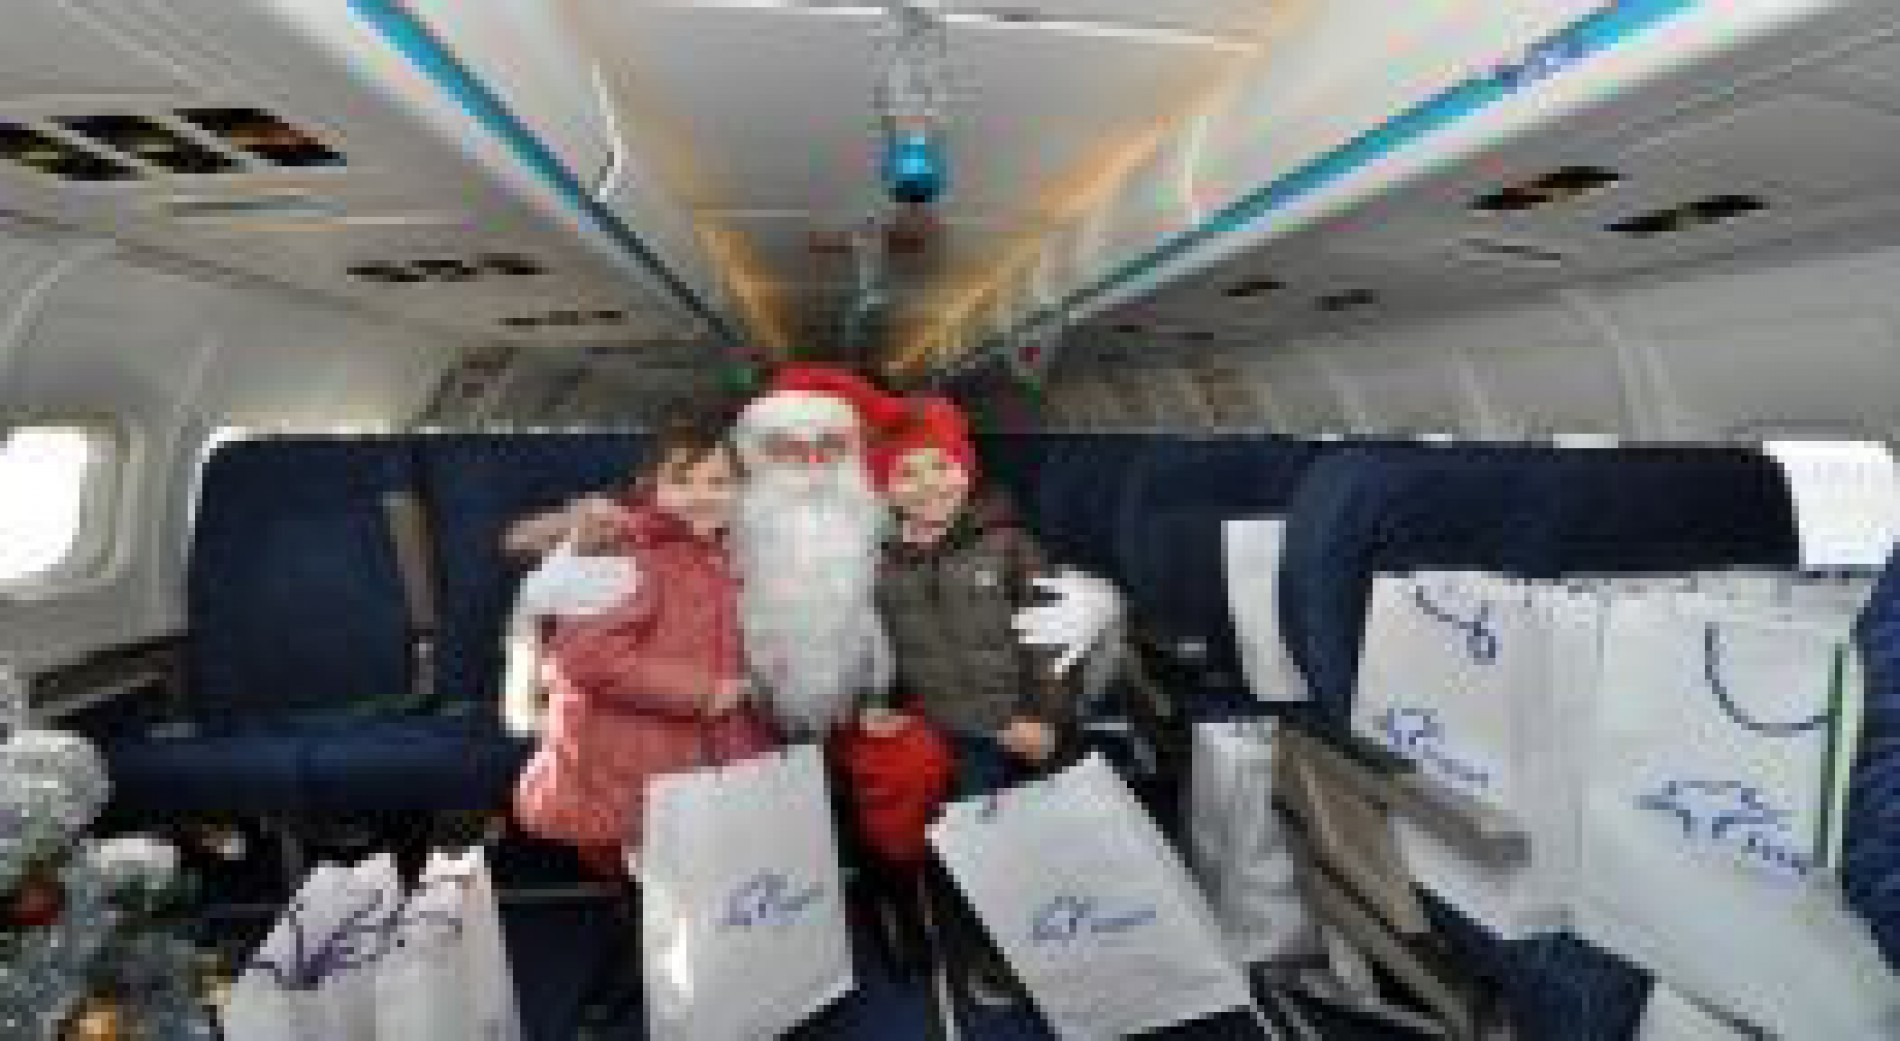 THE CONCESSIONAIR OF THE AIRPORTS IN VARNA AND BURGAS MADE HAPPY 600 CHILDREN , BY ASSURING THEM PERSONAL MEETENG WITH SANTA CLAUS